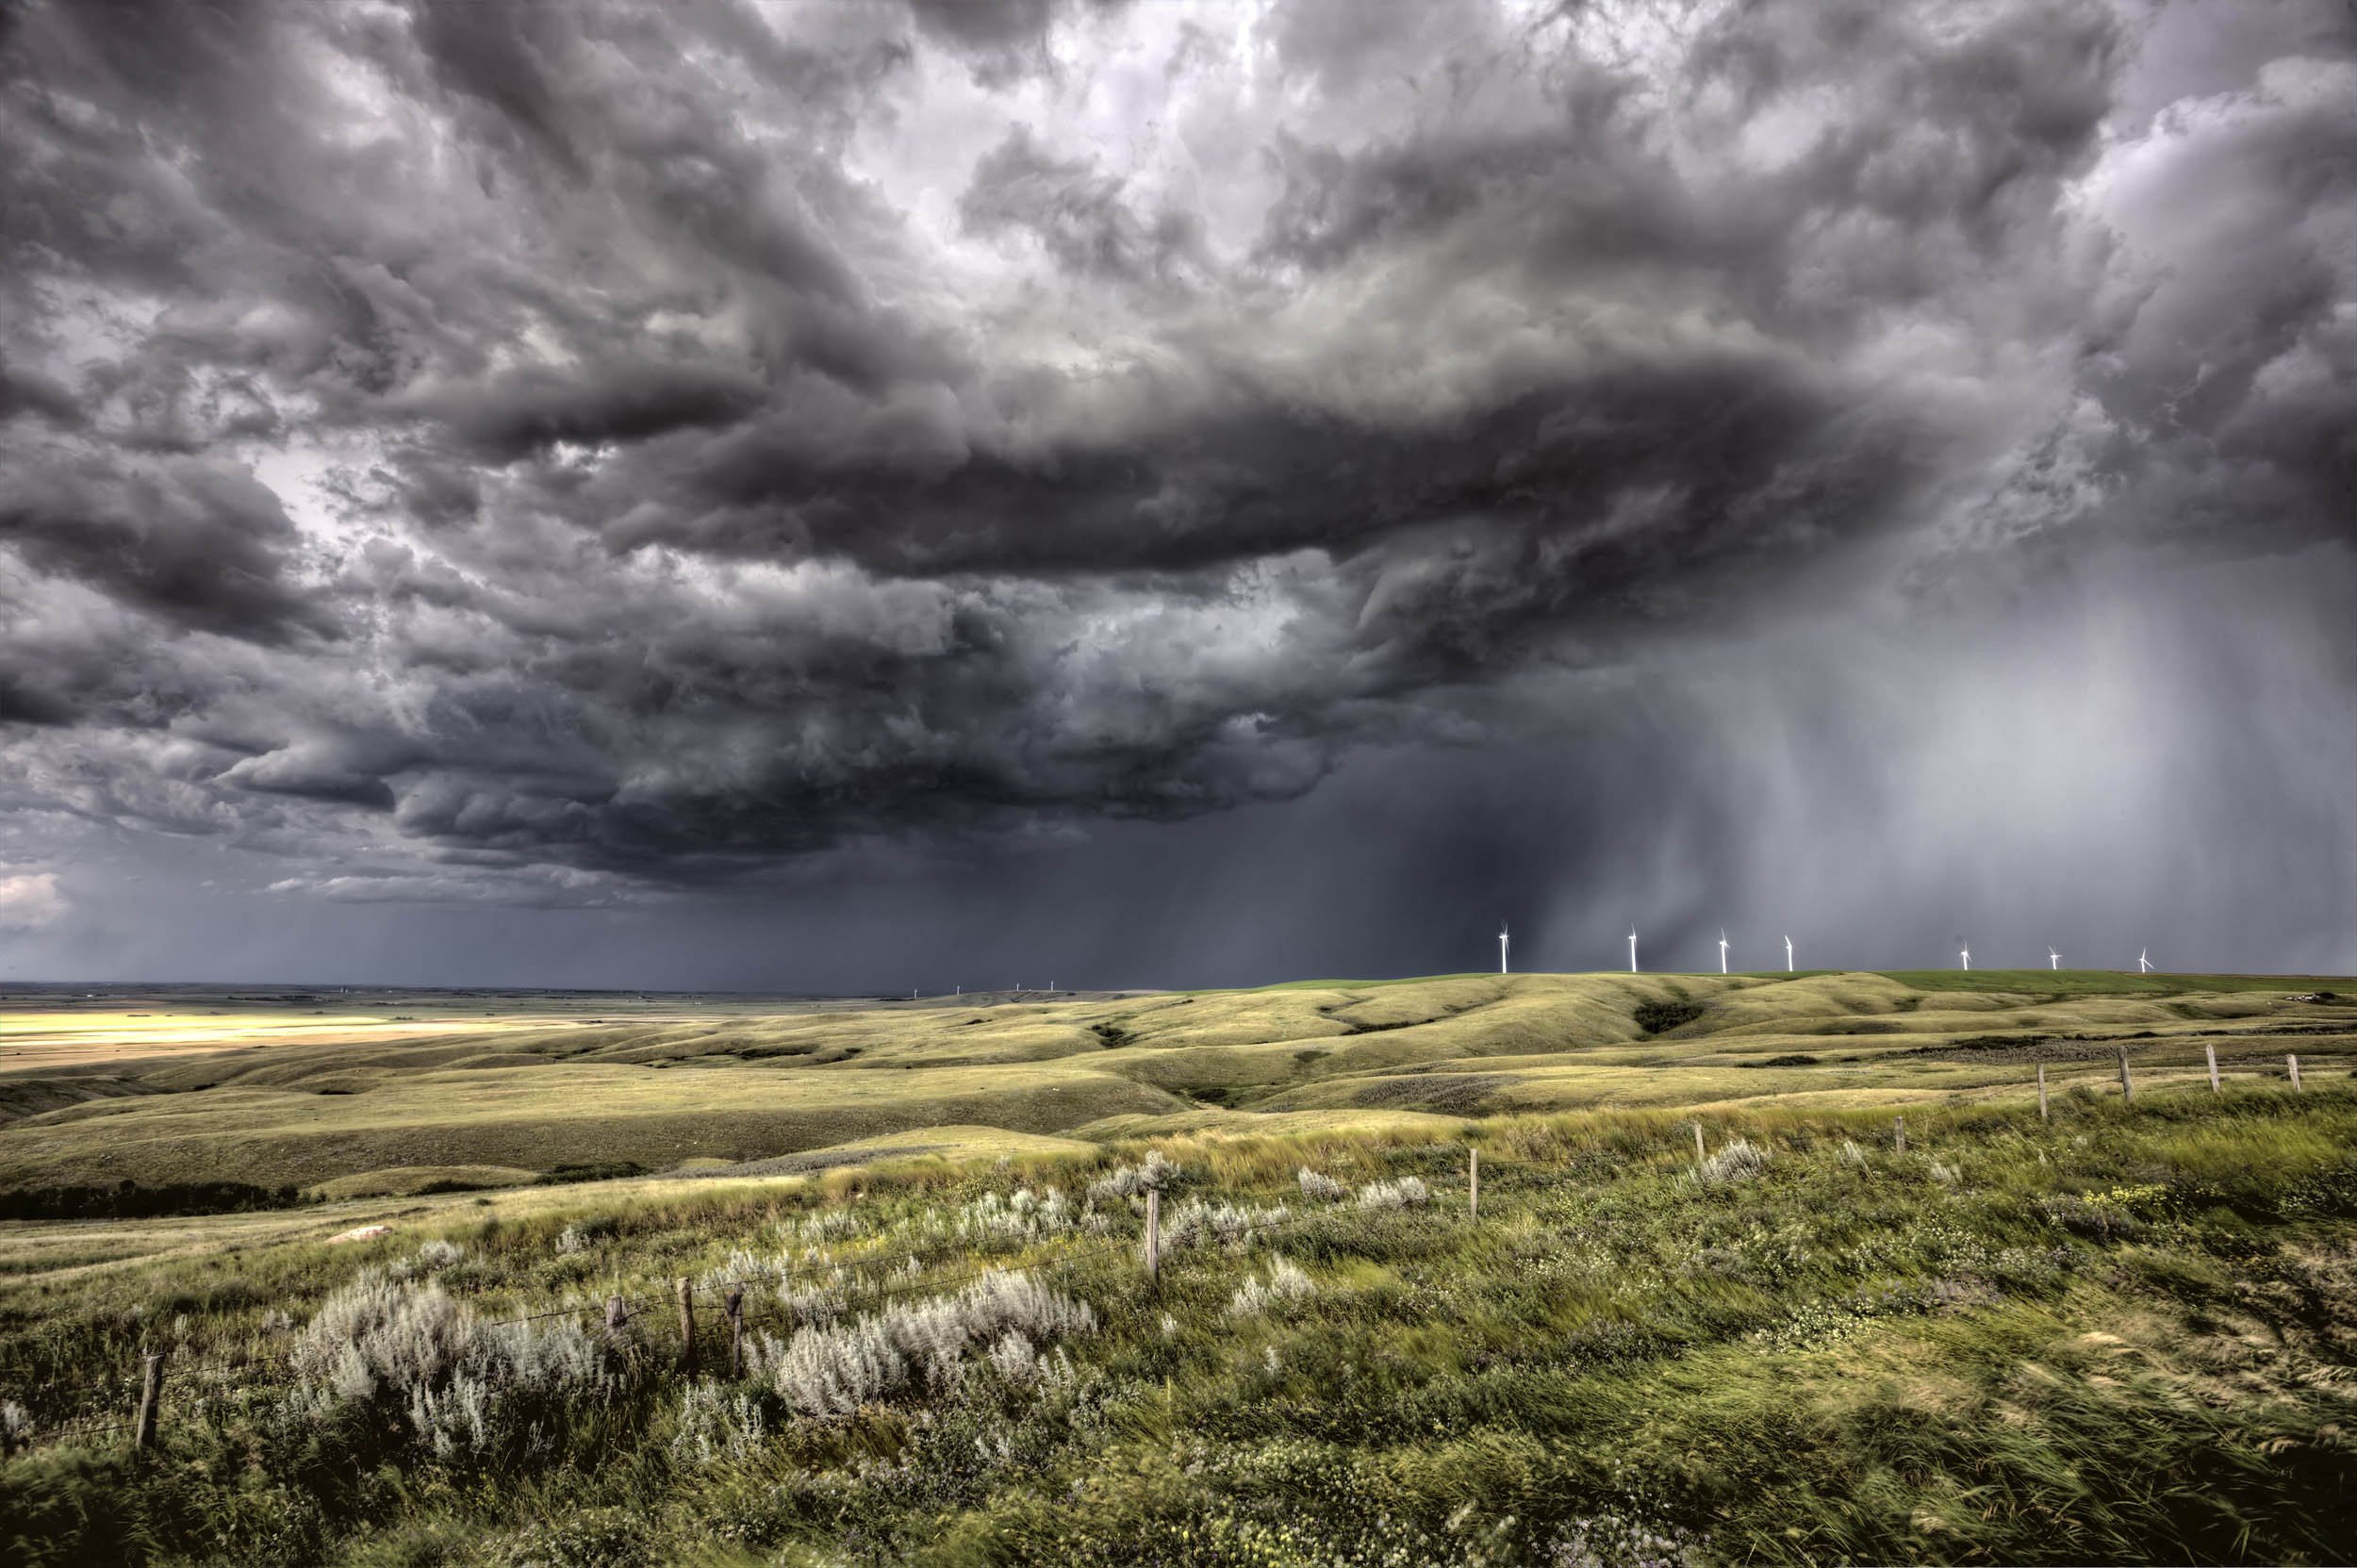 Storm clouds forming over a wind farm • Earth.com